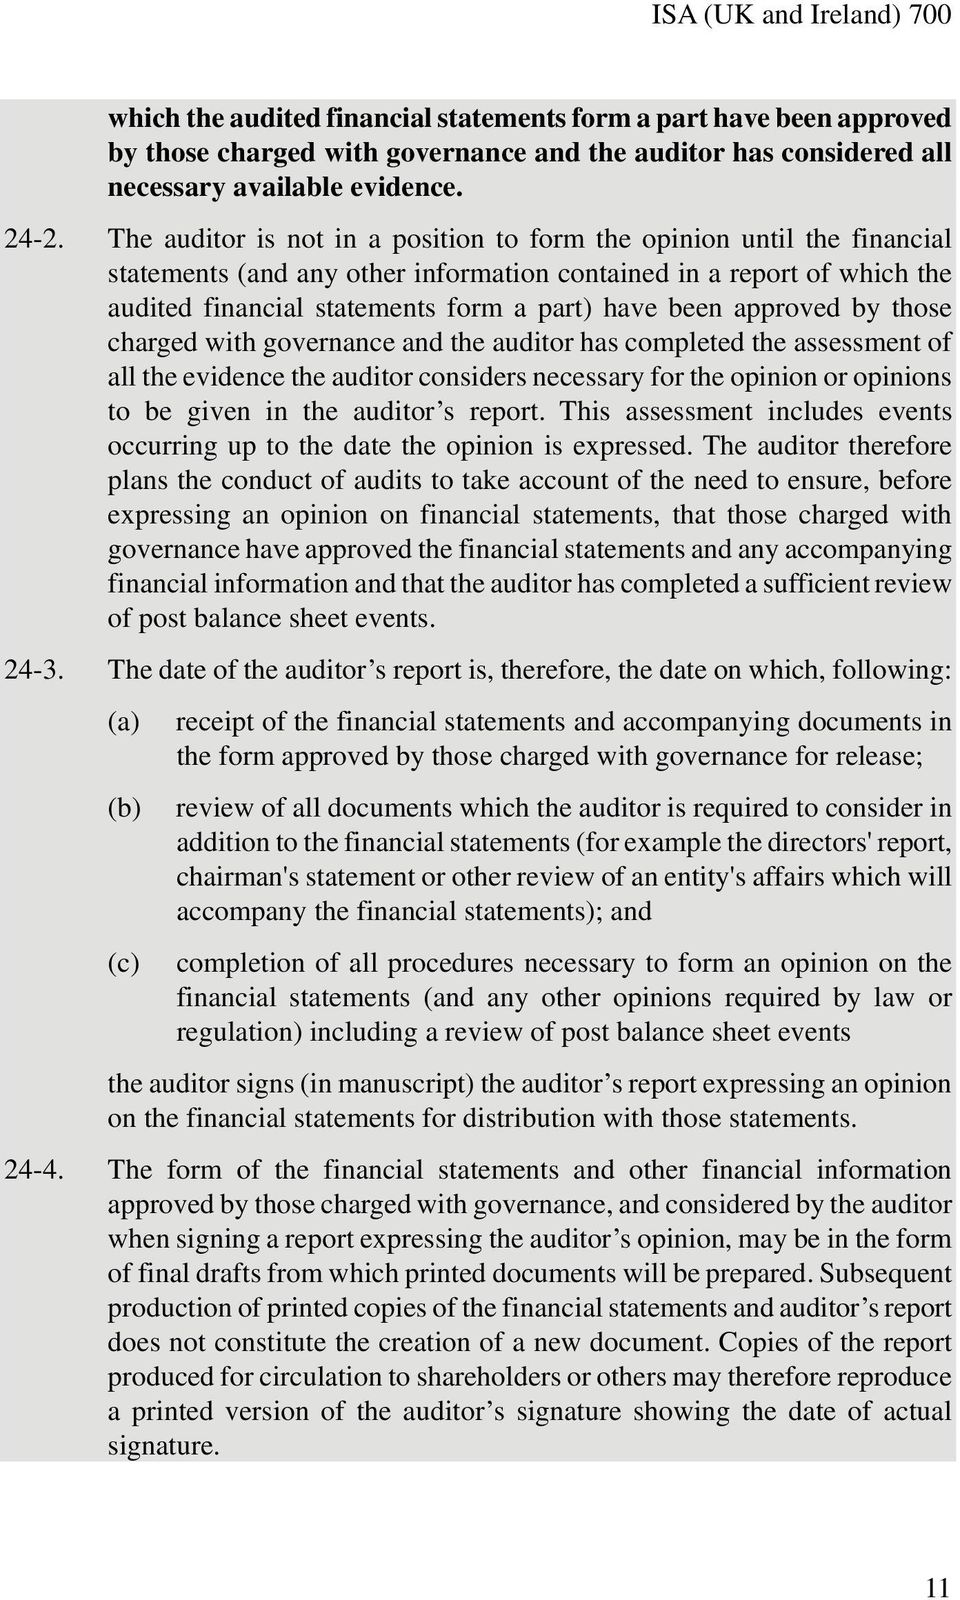 approved by those charged with governance and the auditor has completed the assessment of all the evidence the auditor considers necessary for the opinion or opinions to be given in the auditor s